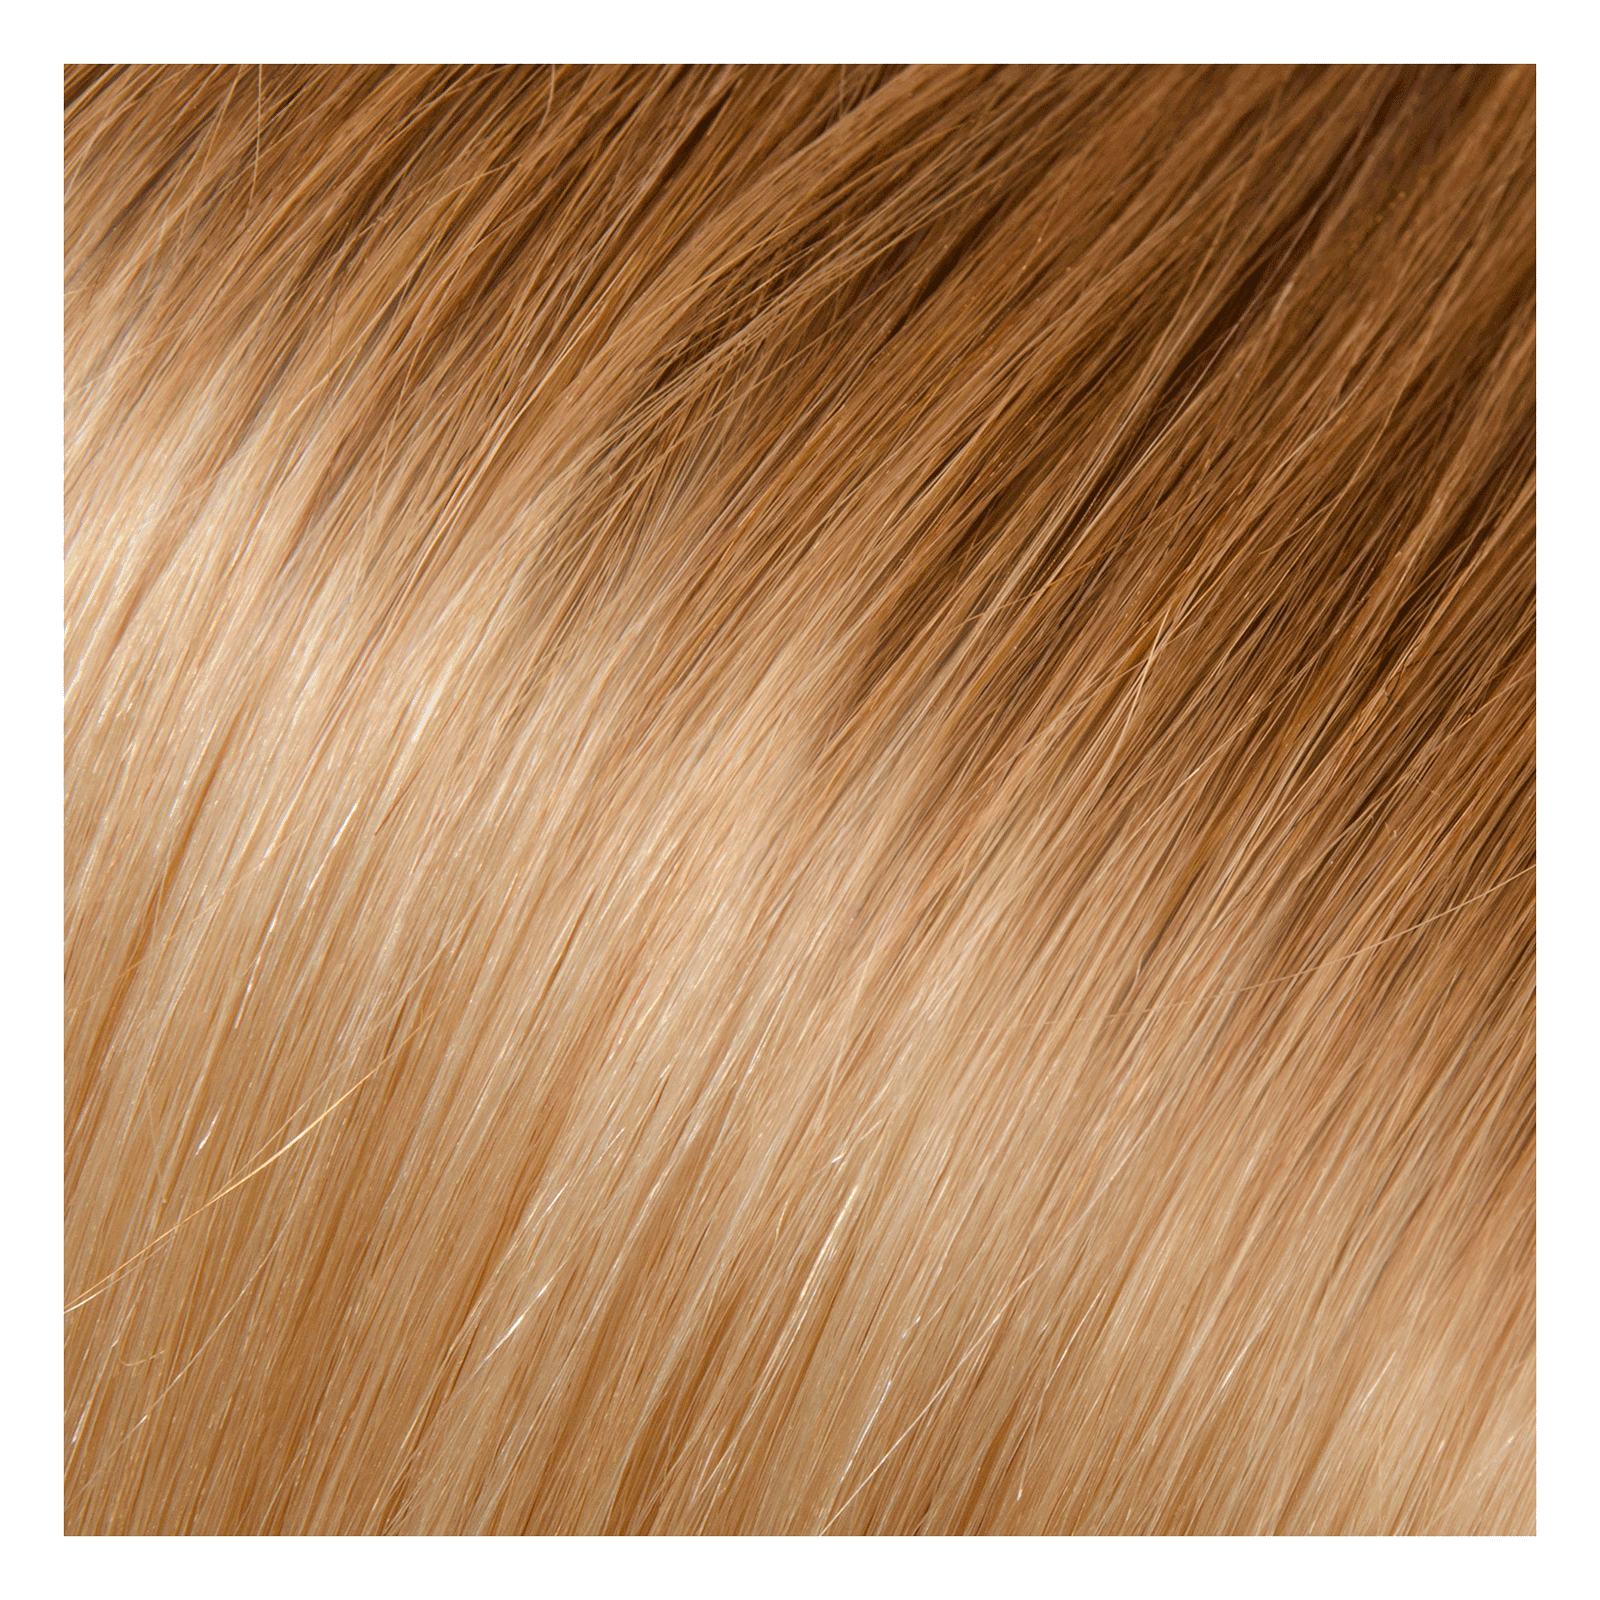 I Tip Pro Hair Extension 18 Inch 12600 Ombre Gabby Babe Hair